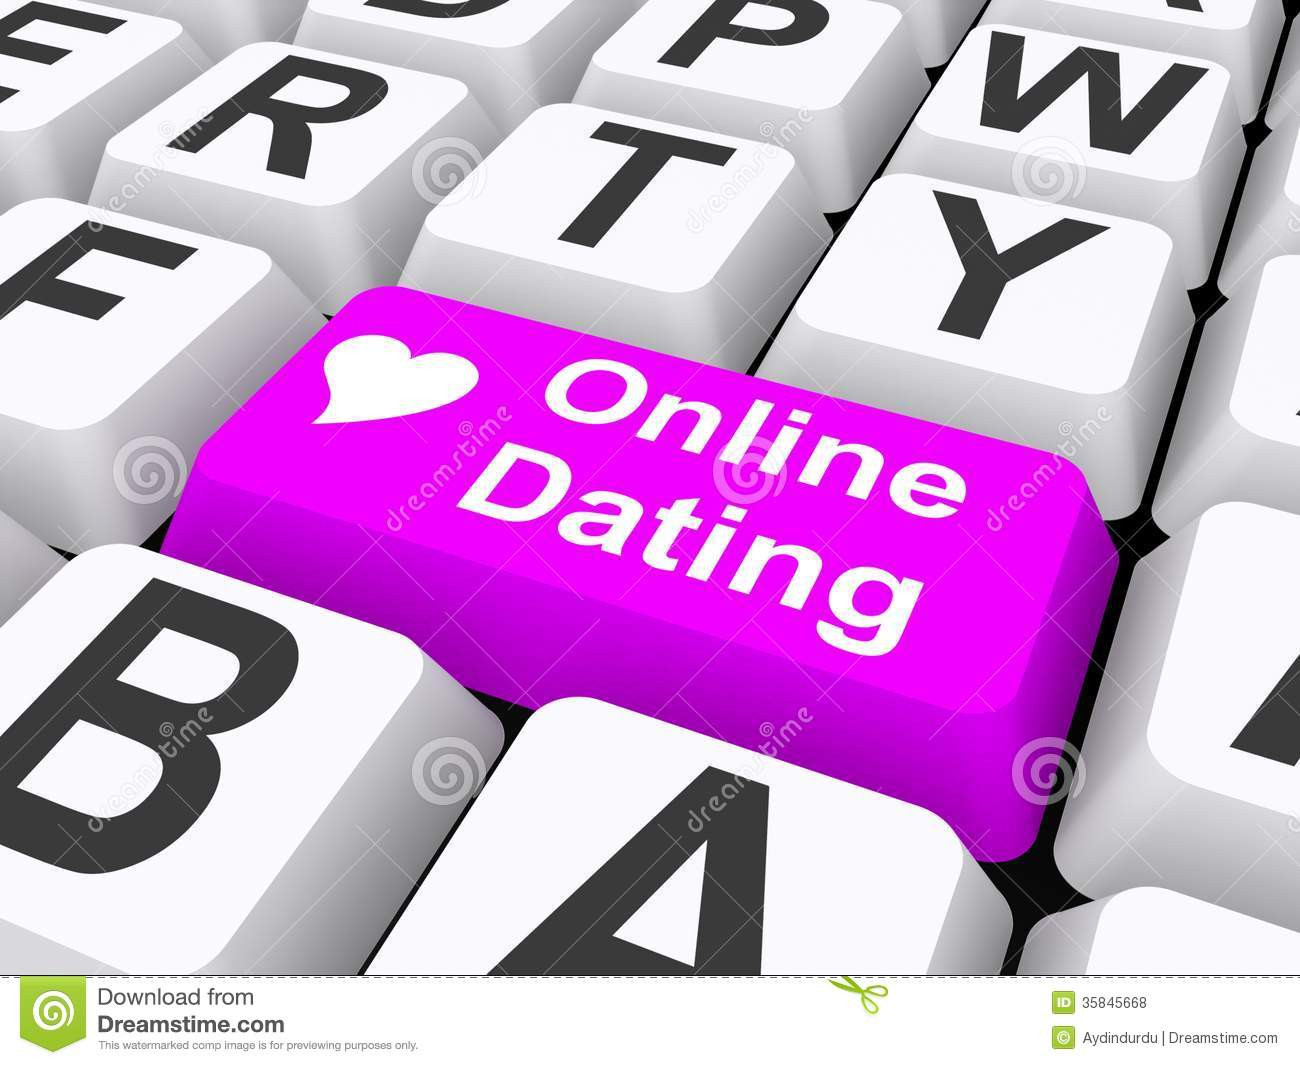 How to text for online dating